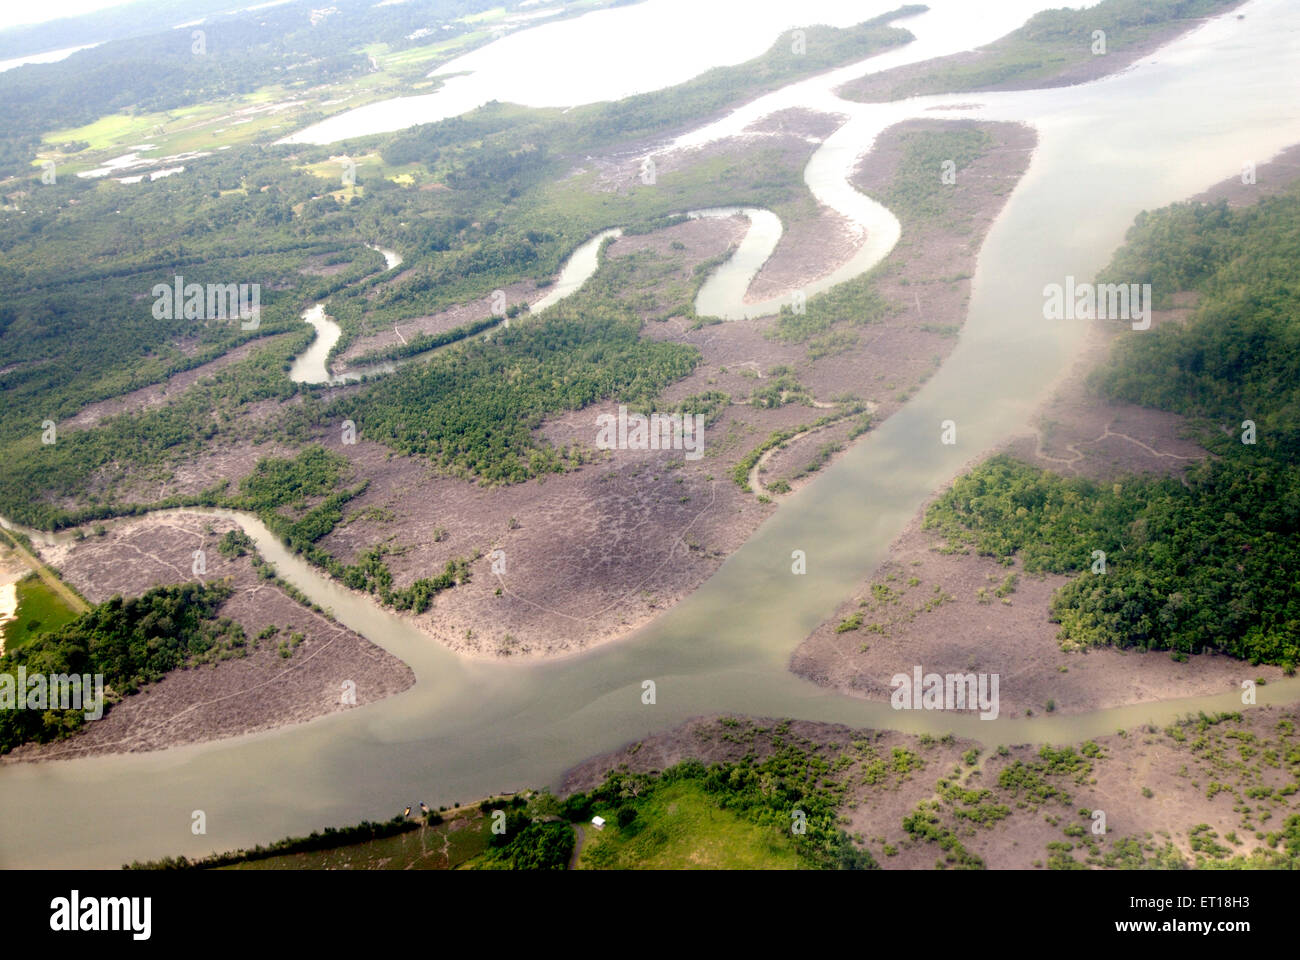 Arial view of Bay of Bengal ; Andaman and Nicobar Islands ; India November 2008 - Stock Image